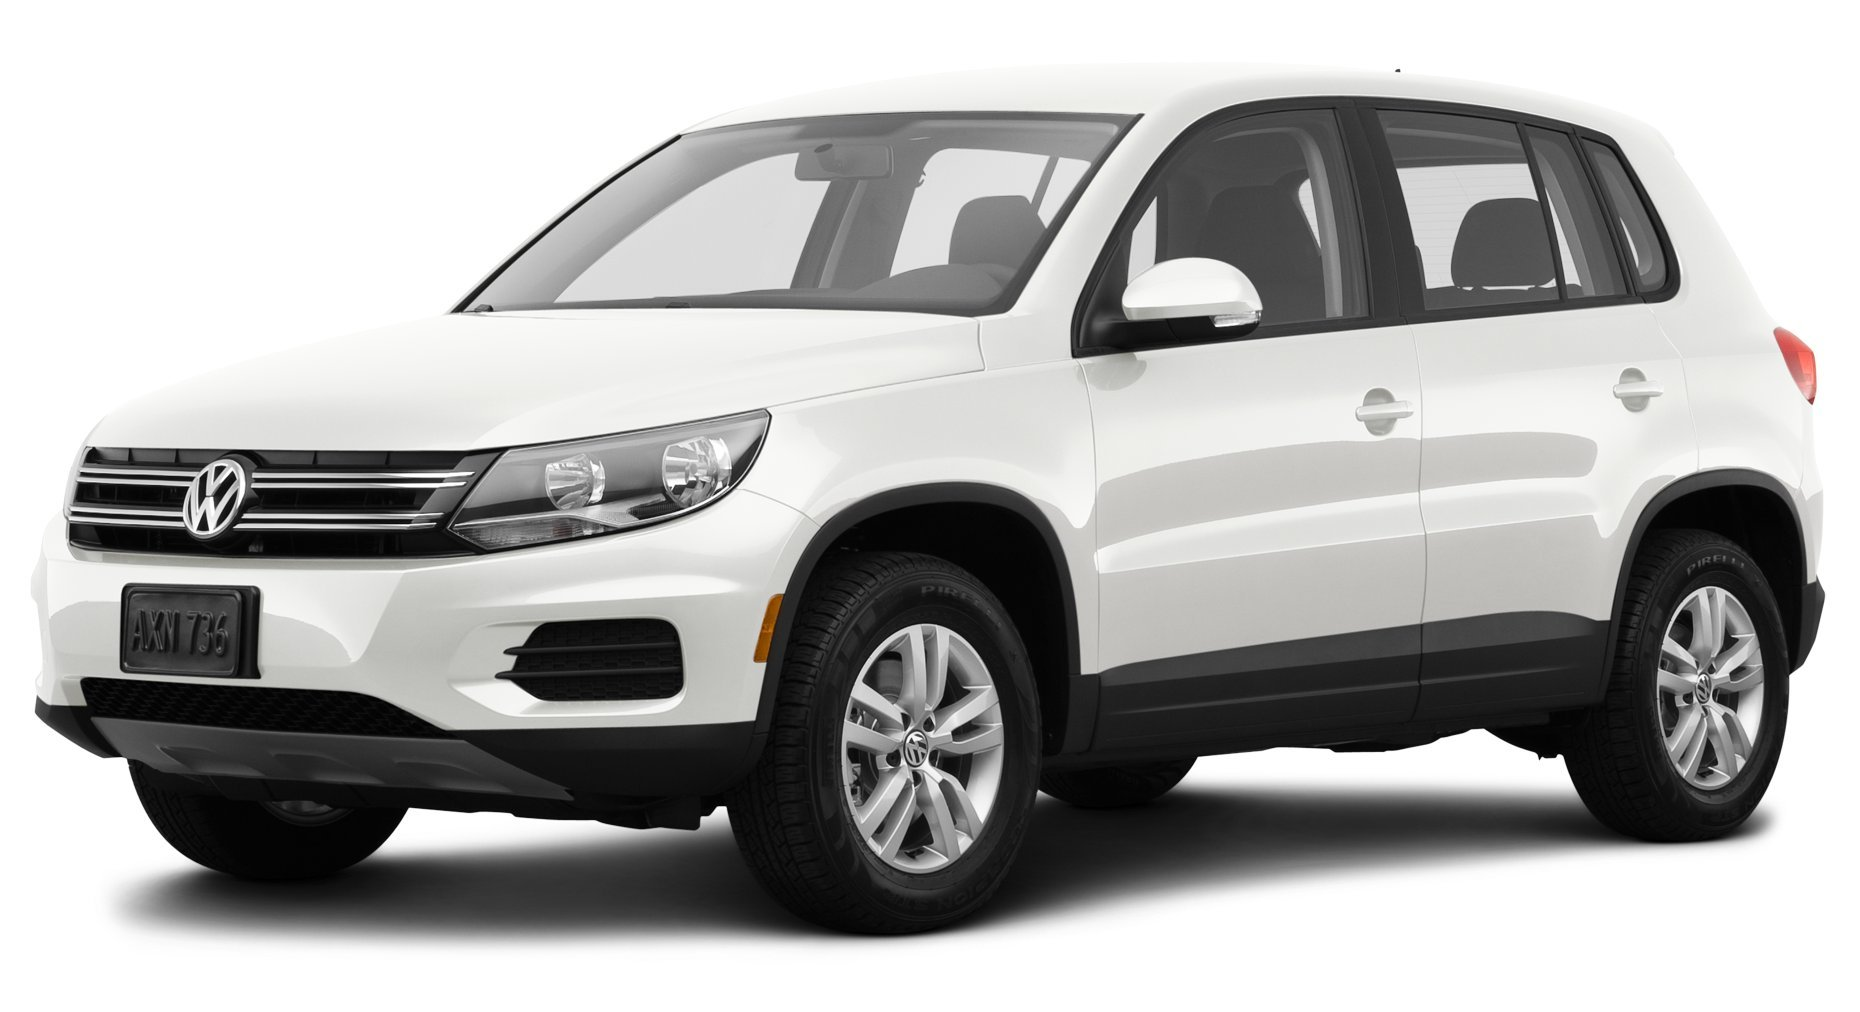 2014 Honda Cr V Reviews Images And Specs Vehicles 2013 Sunroof Wiring Diagram Volkswagen Tiguan S 2 Wheel Drive 4 Door Automatic Transmission